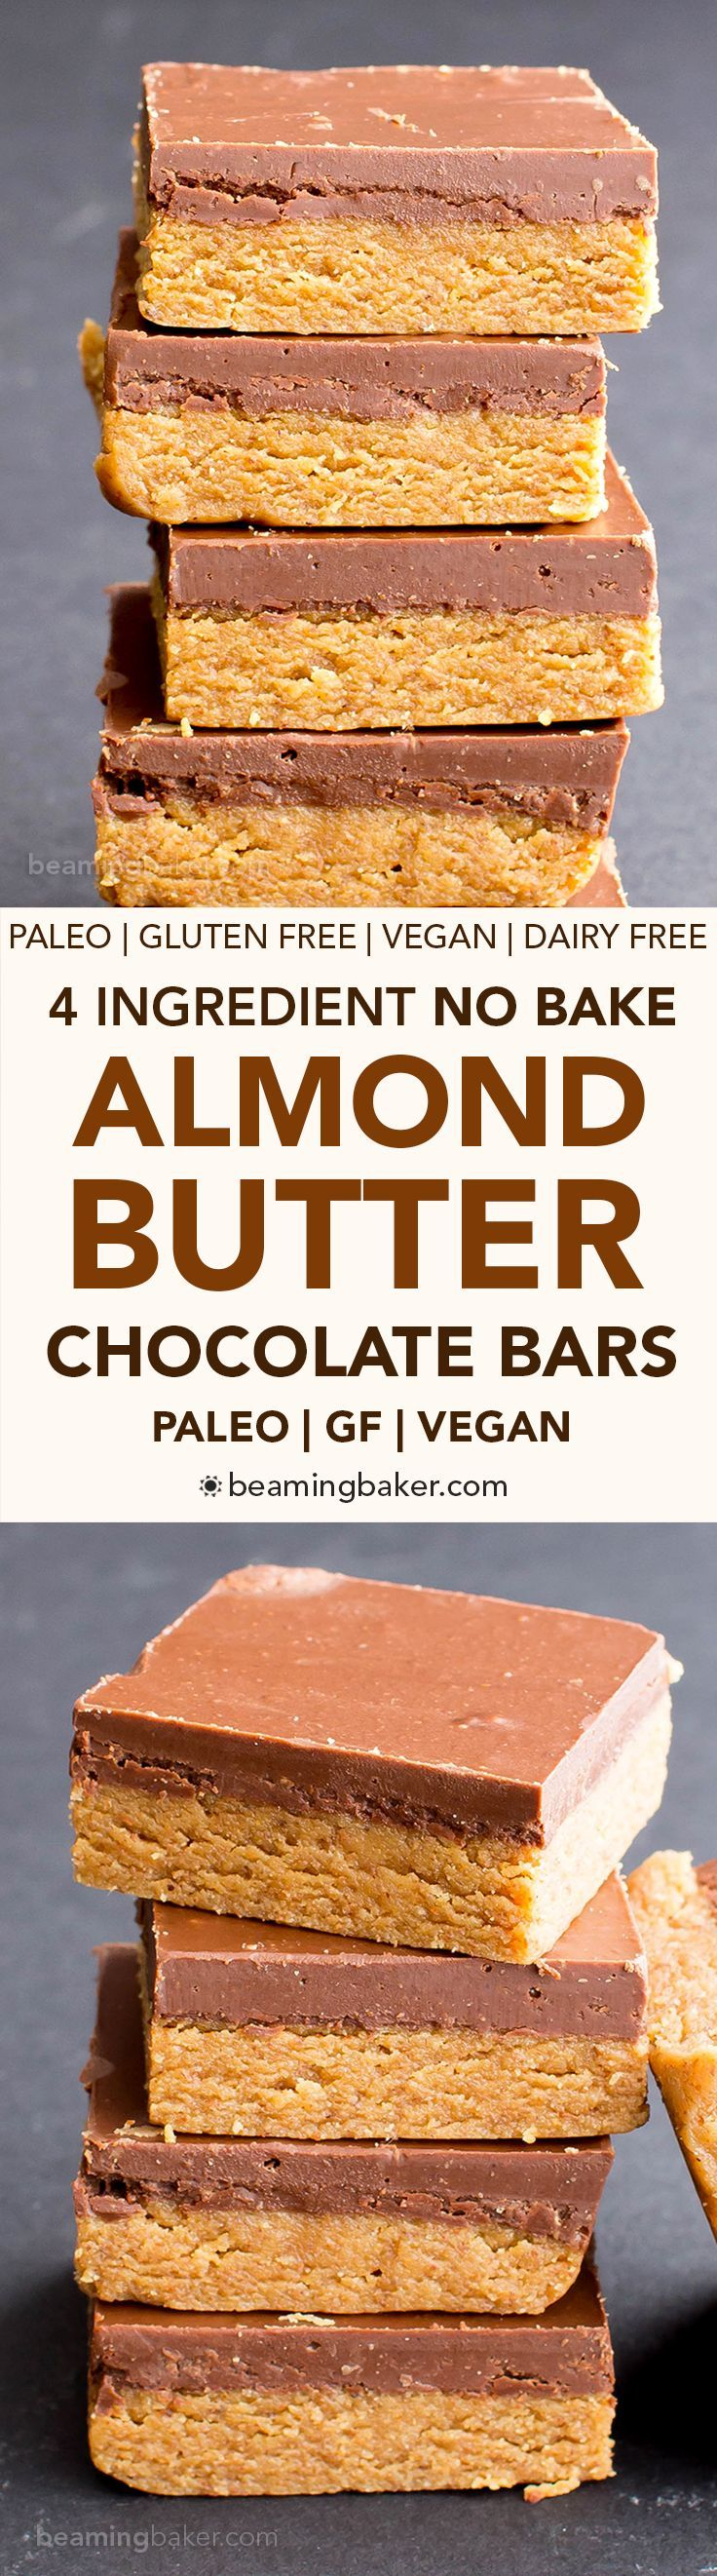 No Bake Paleo Chocolate Almond Butter Bars (V, GF, Paleo): a 4-ingredient no bake recipe for thick, decadent almond butter bars topped with chocolate. Vegan Paleo Gluten Free DairyFree for an delicious and addicting dessert! | follow @sophieeleana